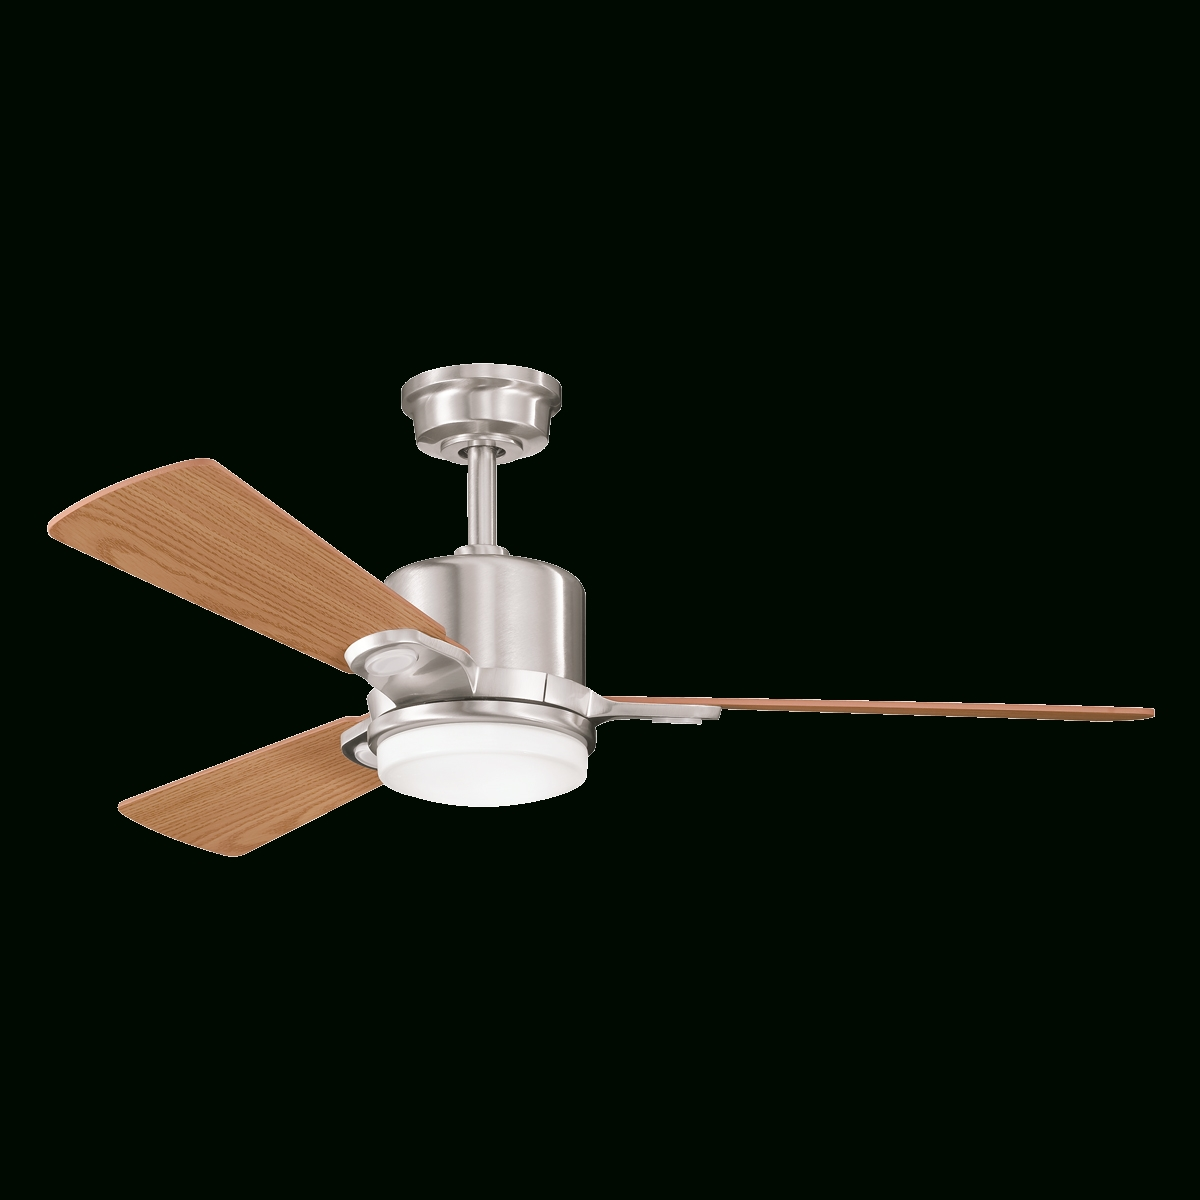 48 Inch Celino Contemporary Fan Bss With Most Recently Released 48 Inch Outdoor Ceiling Fans (View 3 of 20)